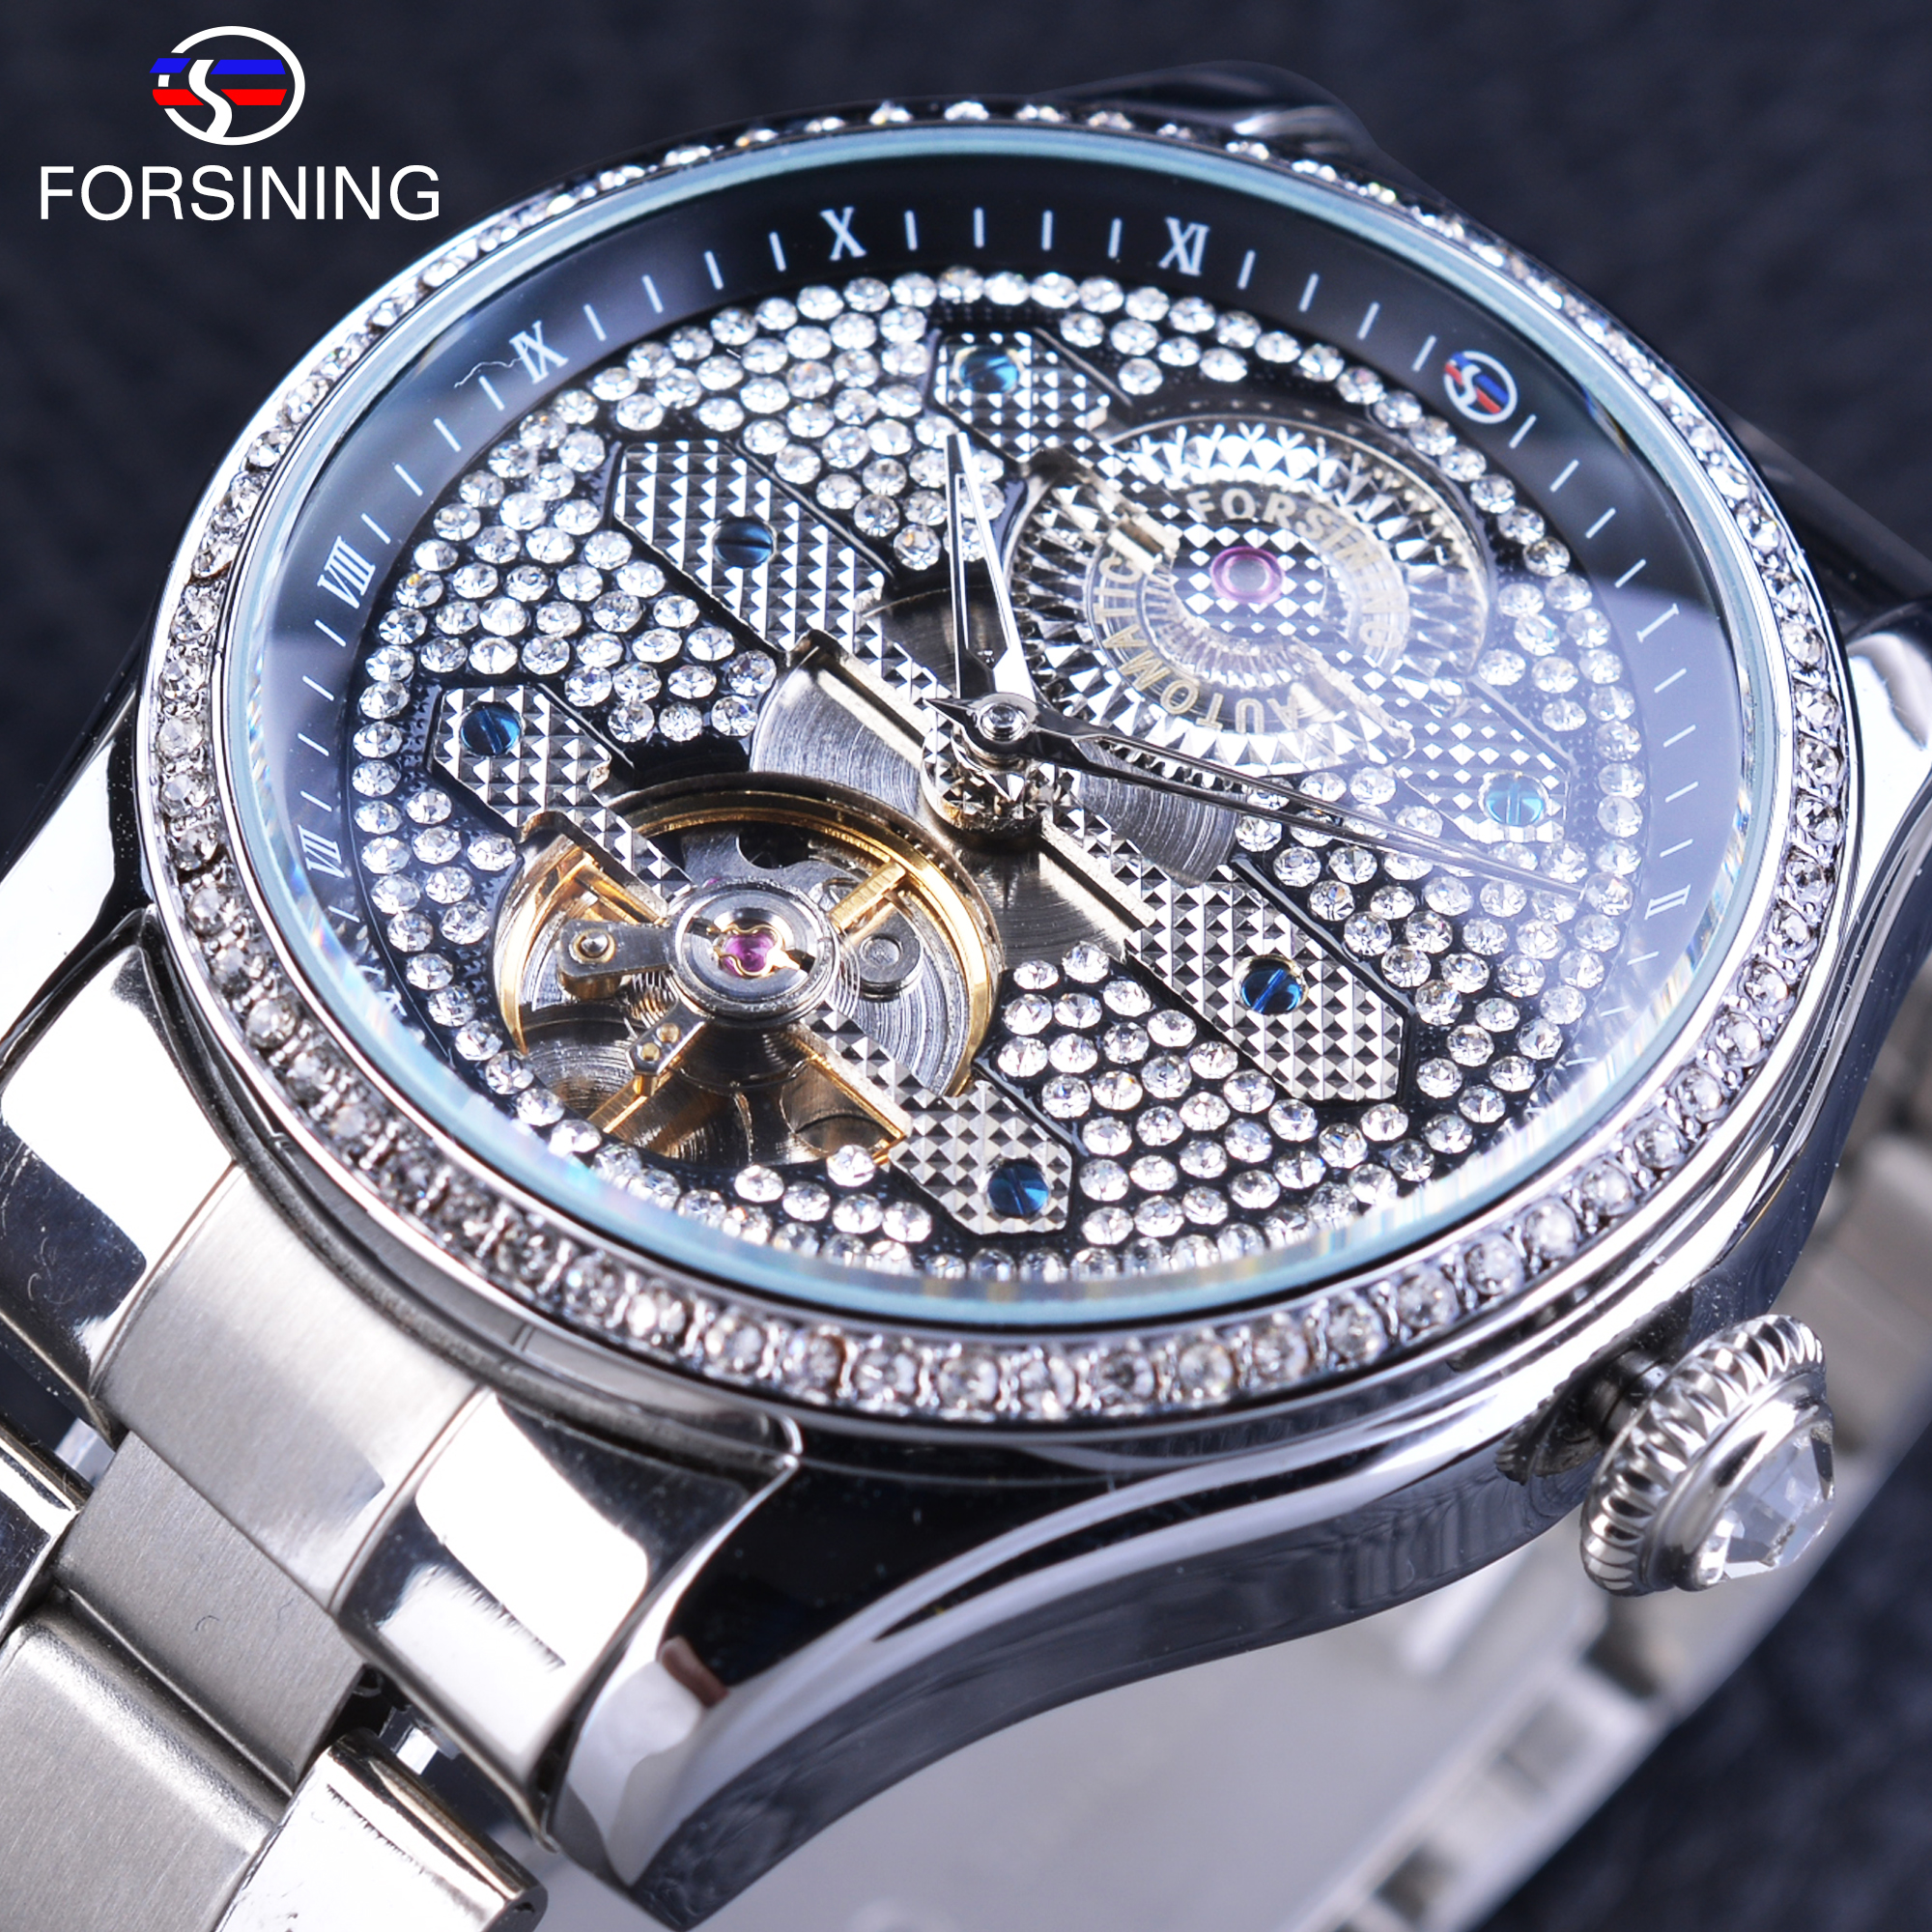 Forsining Trendy Automatic Men's Wrist Watch Diamond Stainless Steel Band Tourbillion Clock Folding Clasp with Safety forsining golden stainless steel sport watch steampunk men watch luminous openwork mechanical watches folding clasp with safety